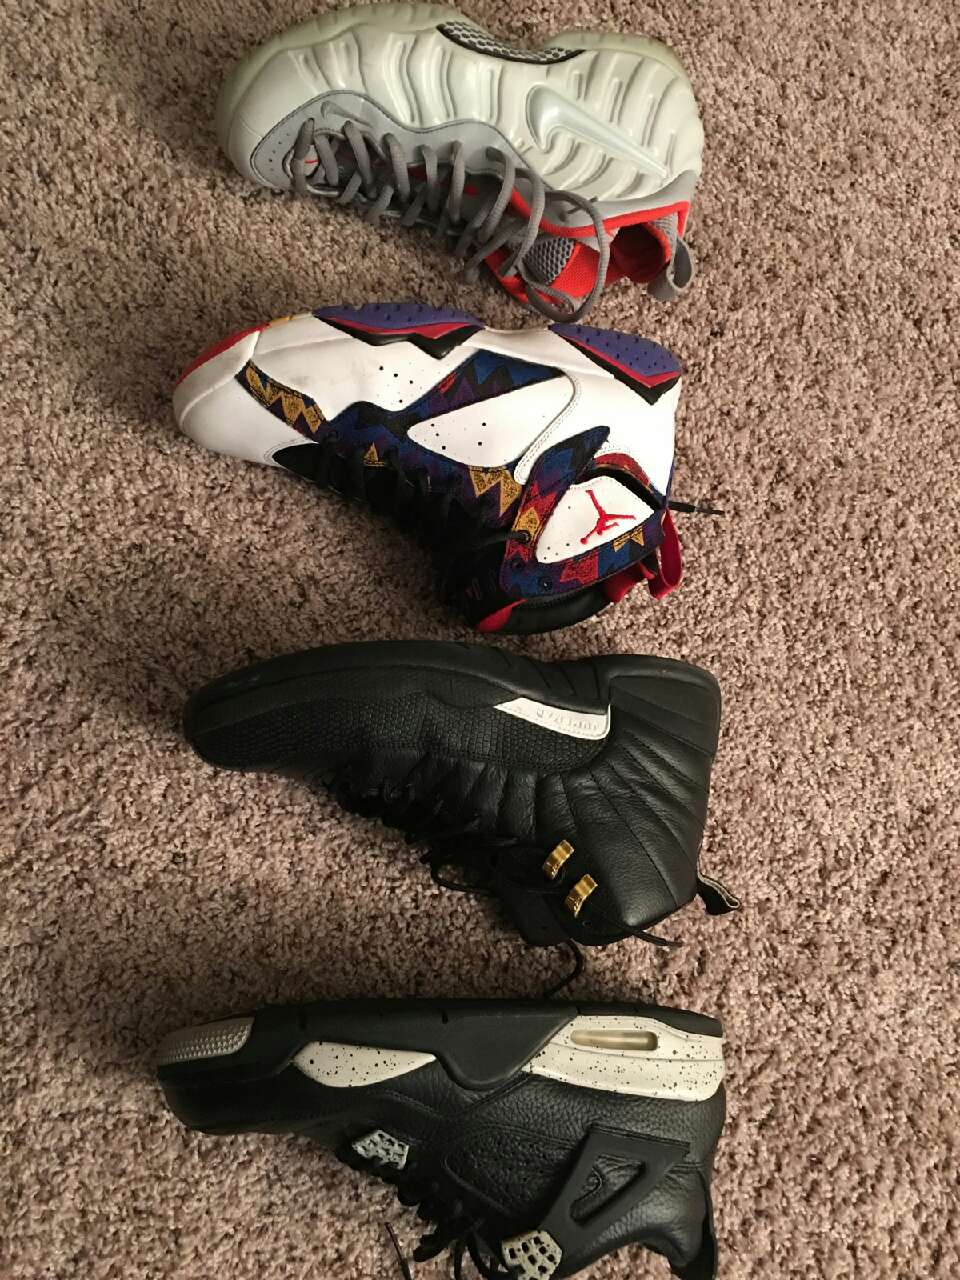 J's all size 10